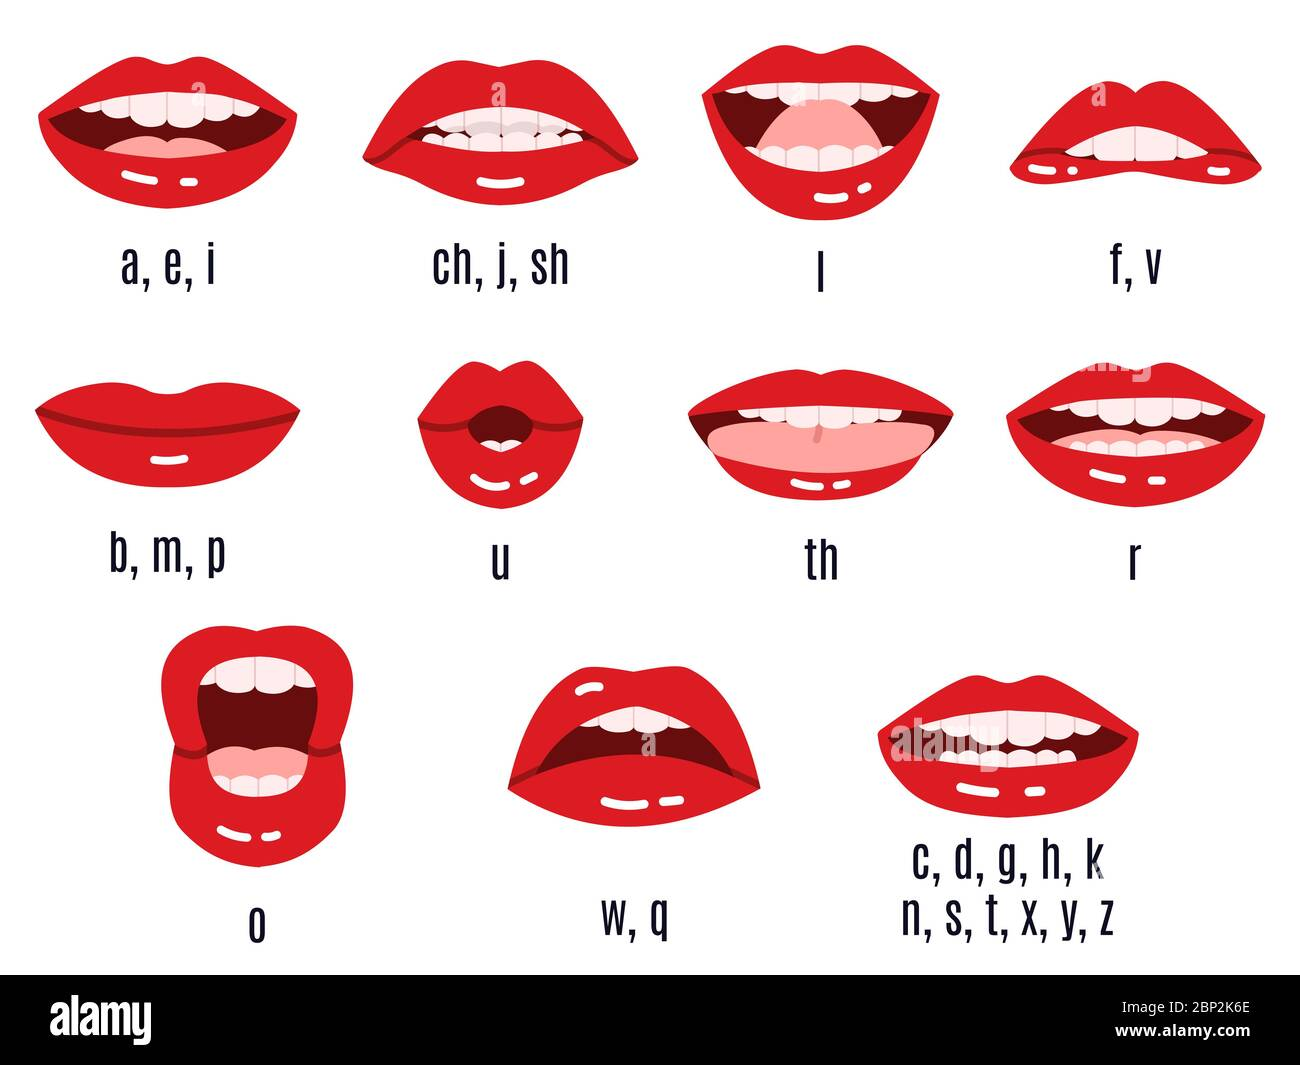 Mouth sound pronunciation. Lips phonemes animation, talking red